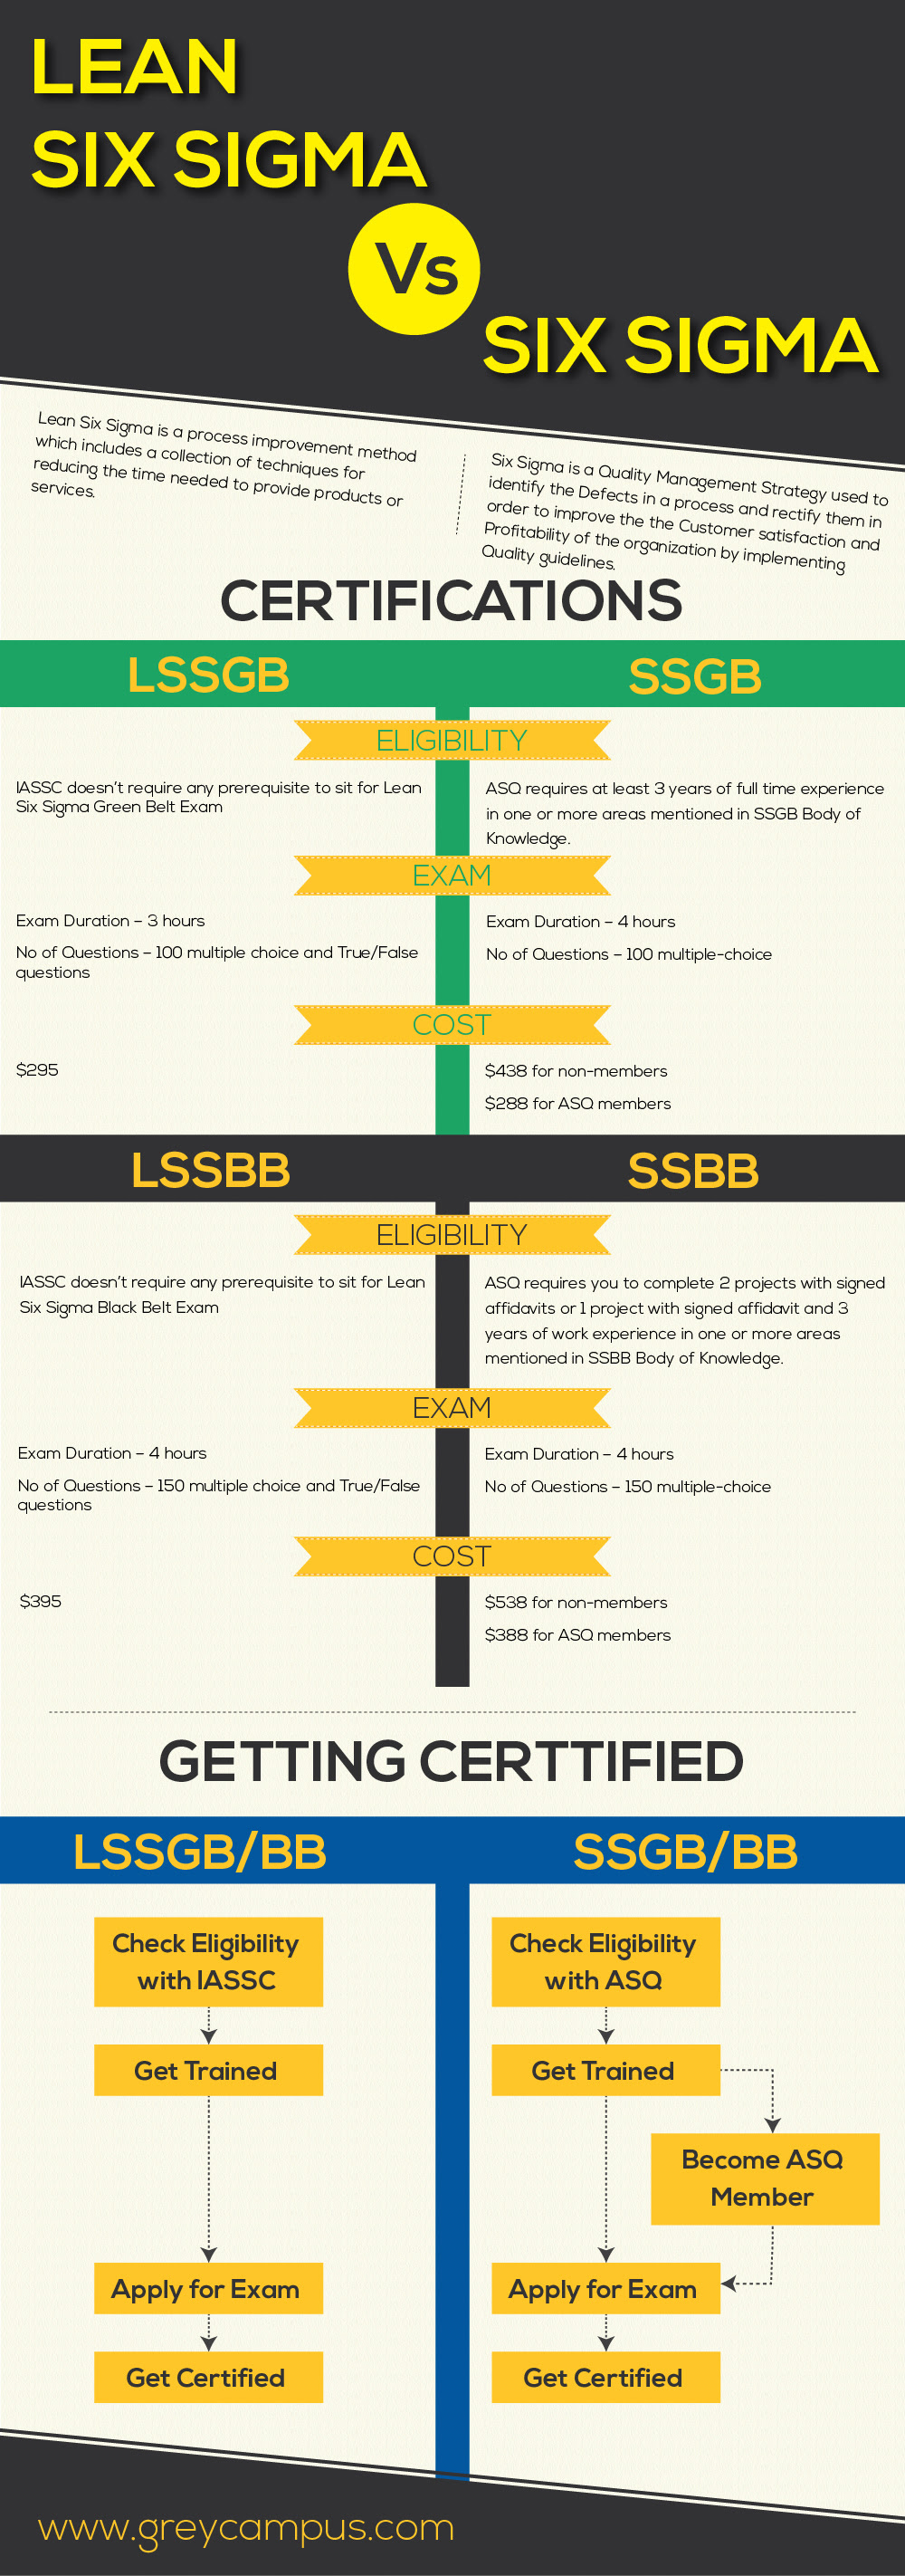 Details on the Certification process for Lean Six Sigma and Six Sigma Green and Black Belt